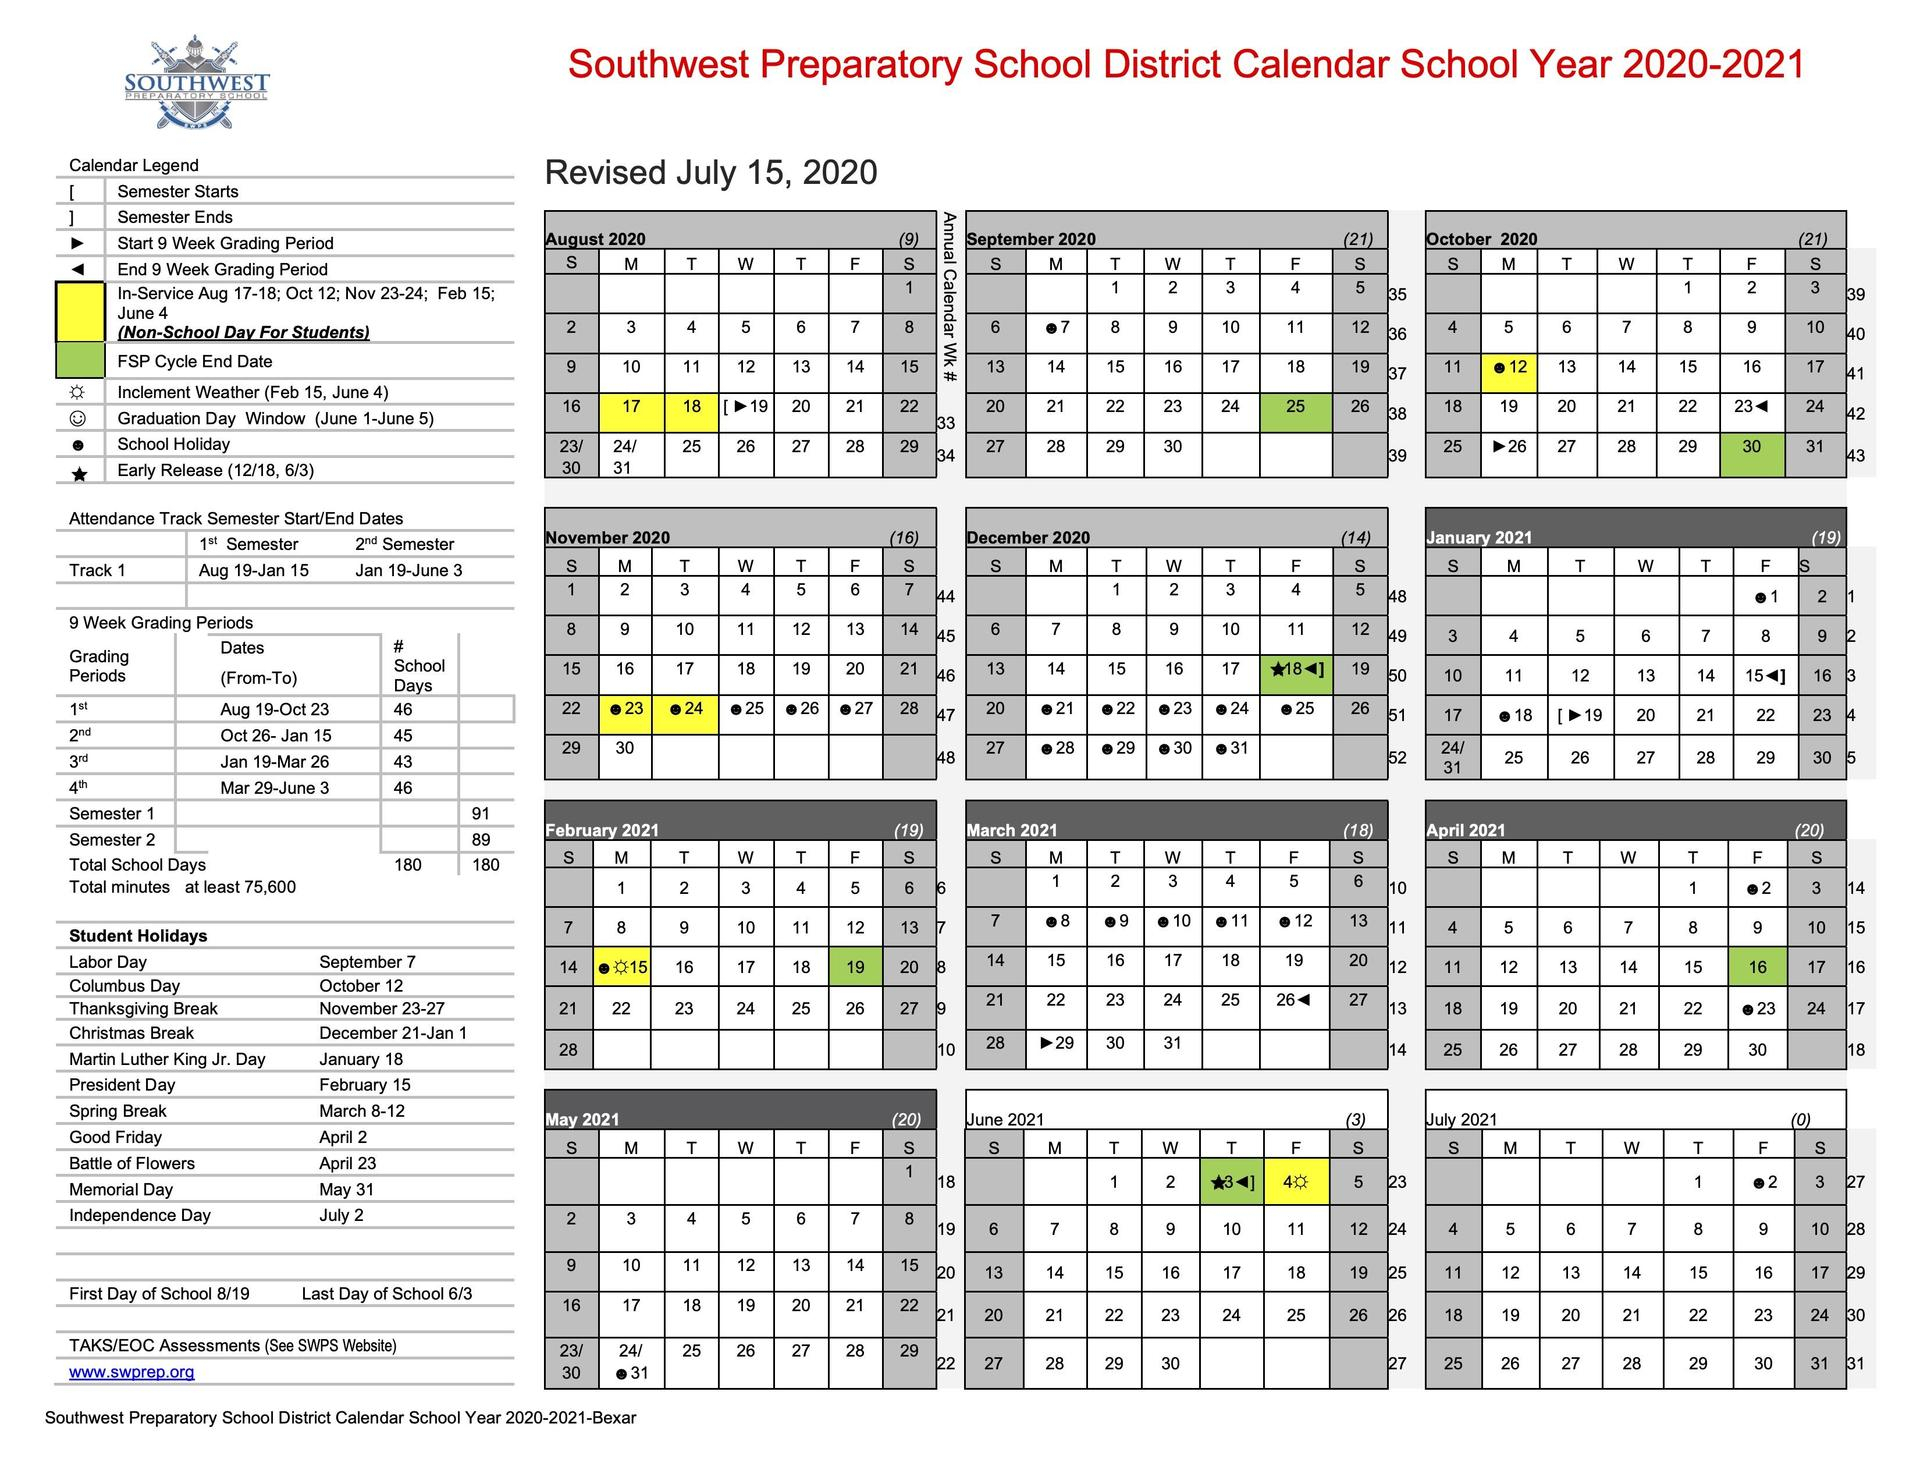 San Antonio School Calendars And Covid Resources, Updated